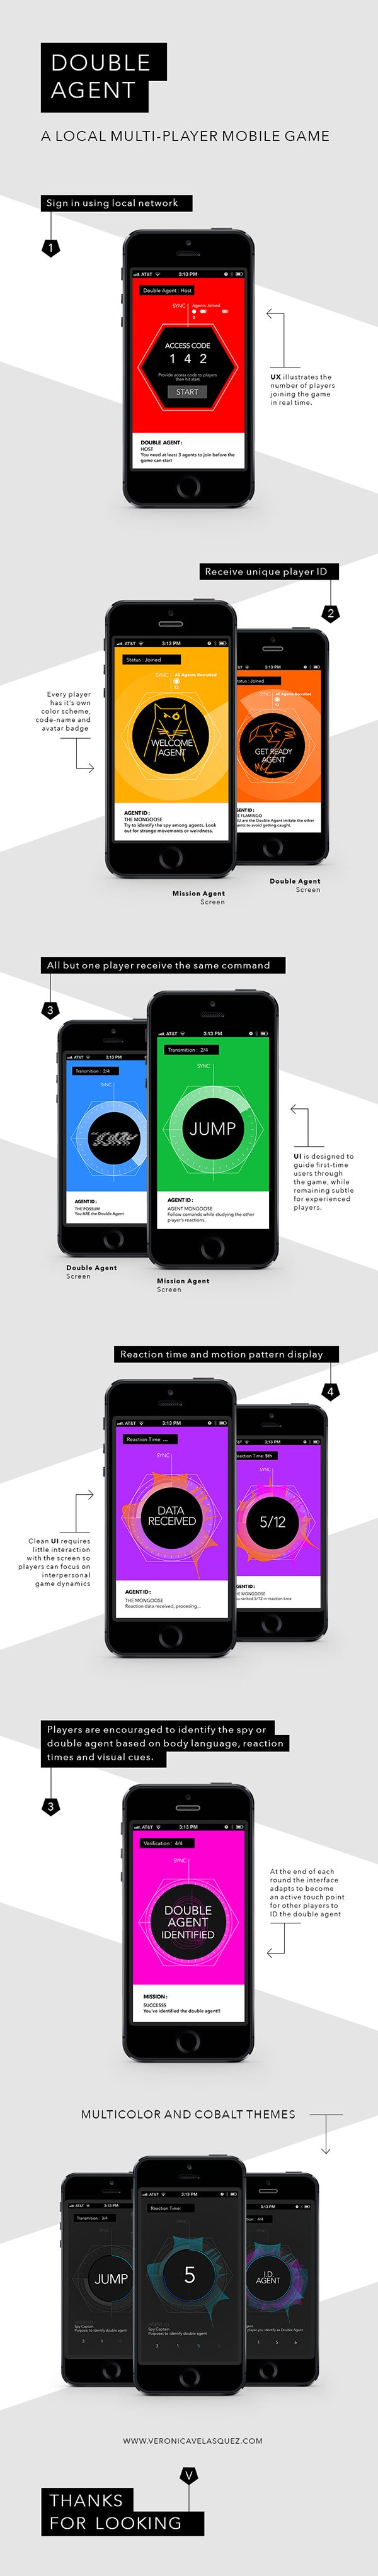 Double Agent IOS Game by Veronica Velasquez, via Behance